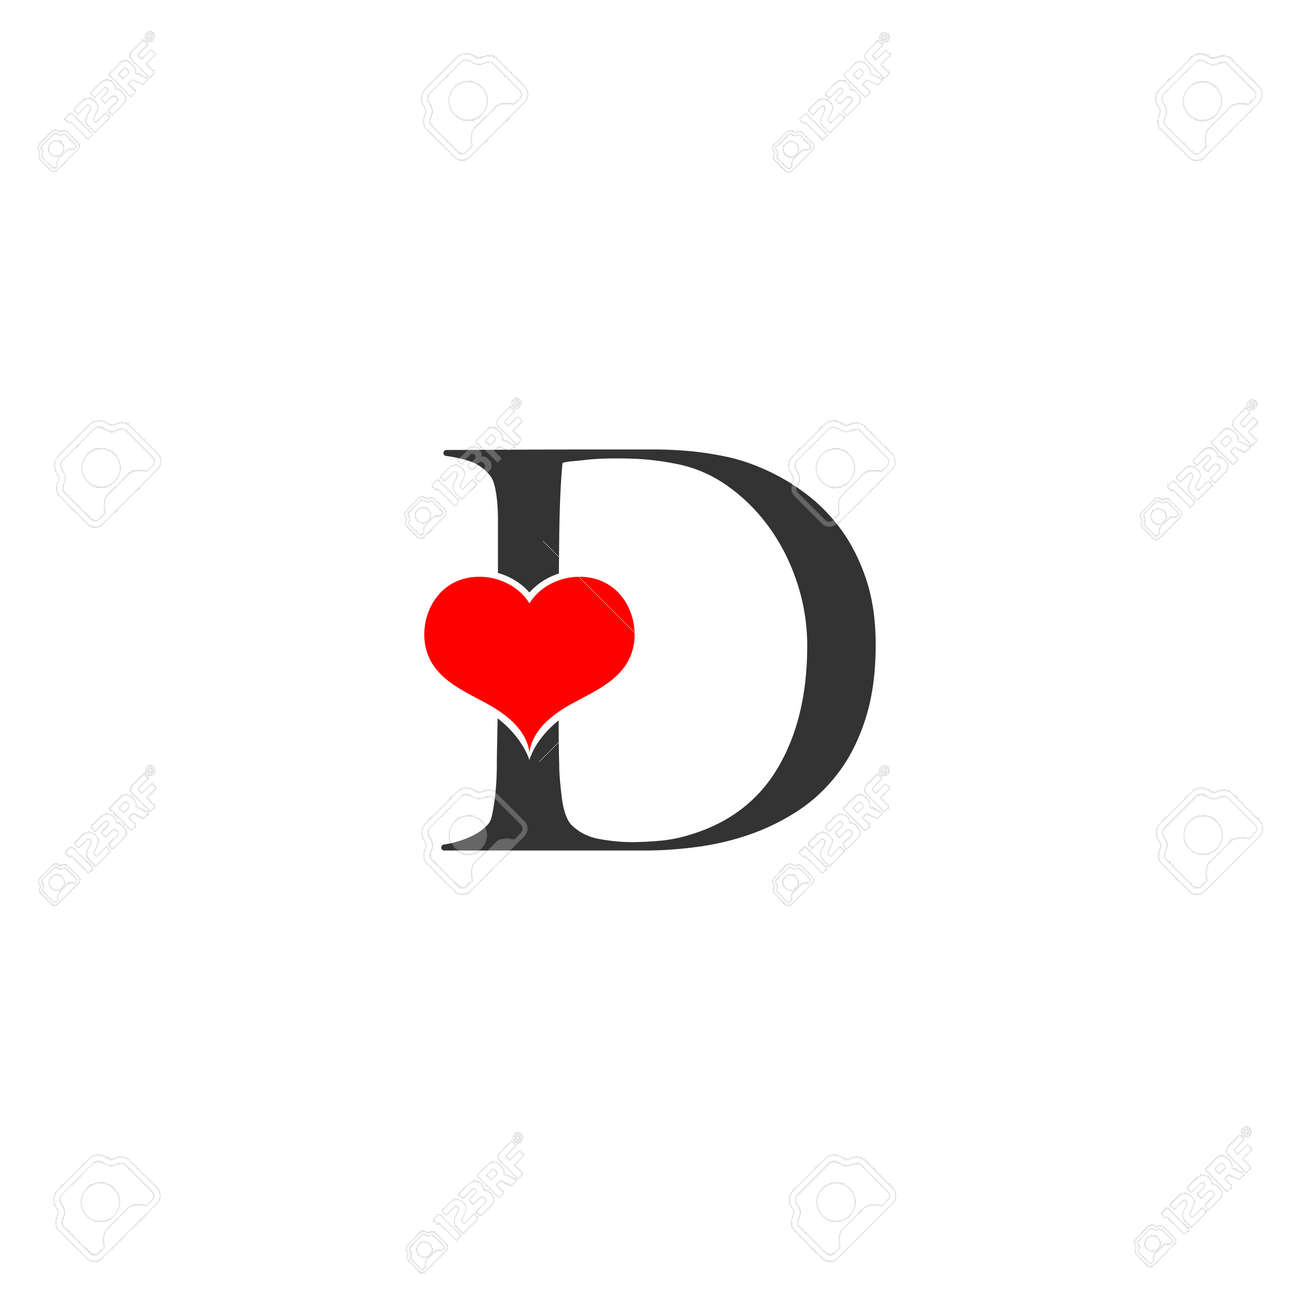 D Letter Logo With Heart Icon Valentines Day Concept Royalty Free